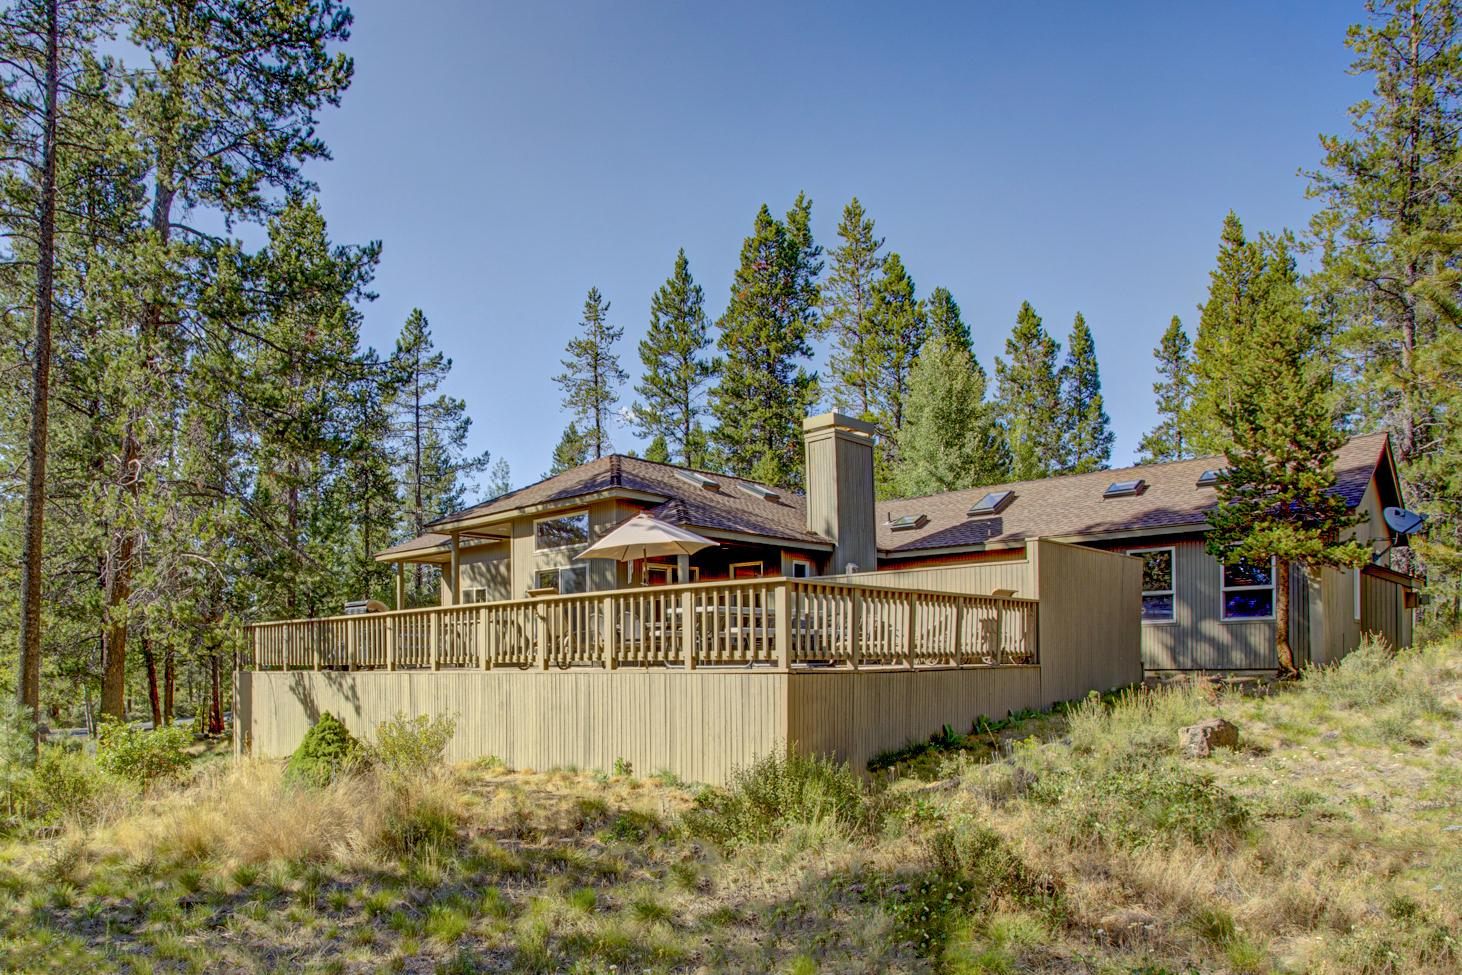 Welcome to Sunriver! This winter getaway is professionally managed by TurnKey Vacation Rentals.